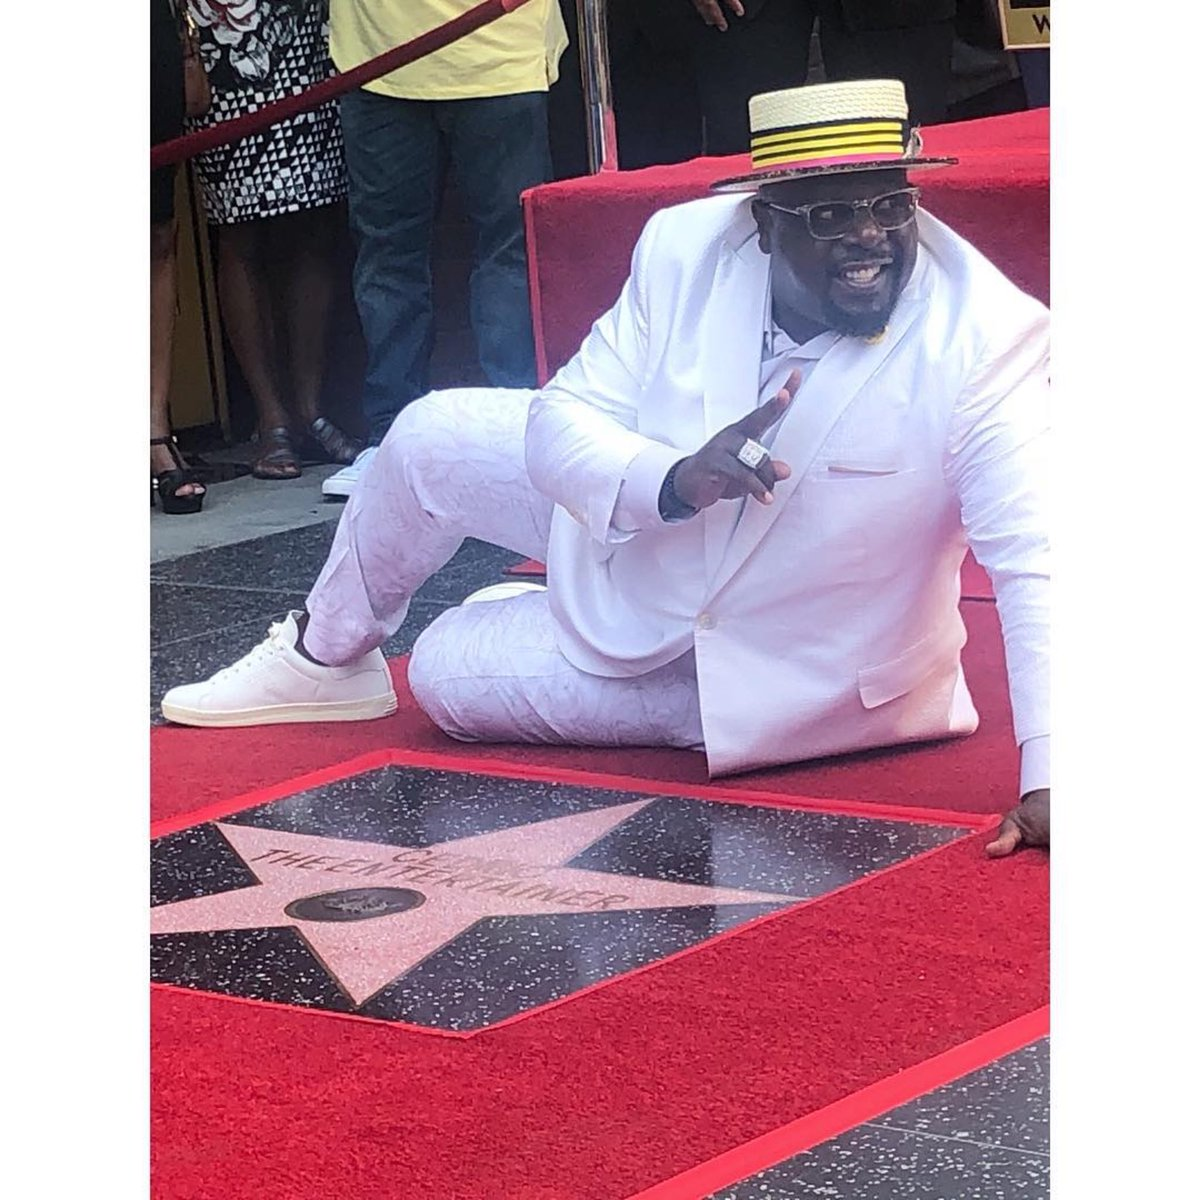 test Twitter Media - Big Congratulations @CedEntertainer on your ⭐️!! You've always shined brightly in our eyes, Glad now all of #Hollywood sees it too! #Represent ✊🏽 https://t.co/sBcVCQCsMC